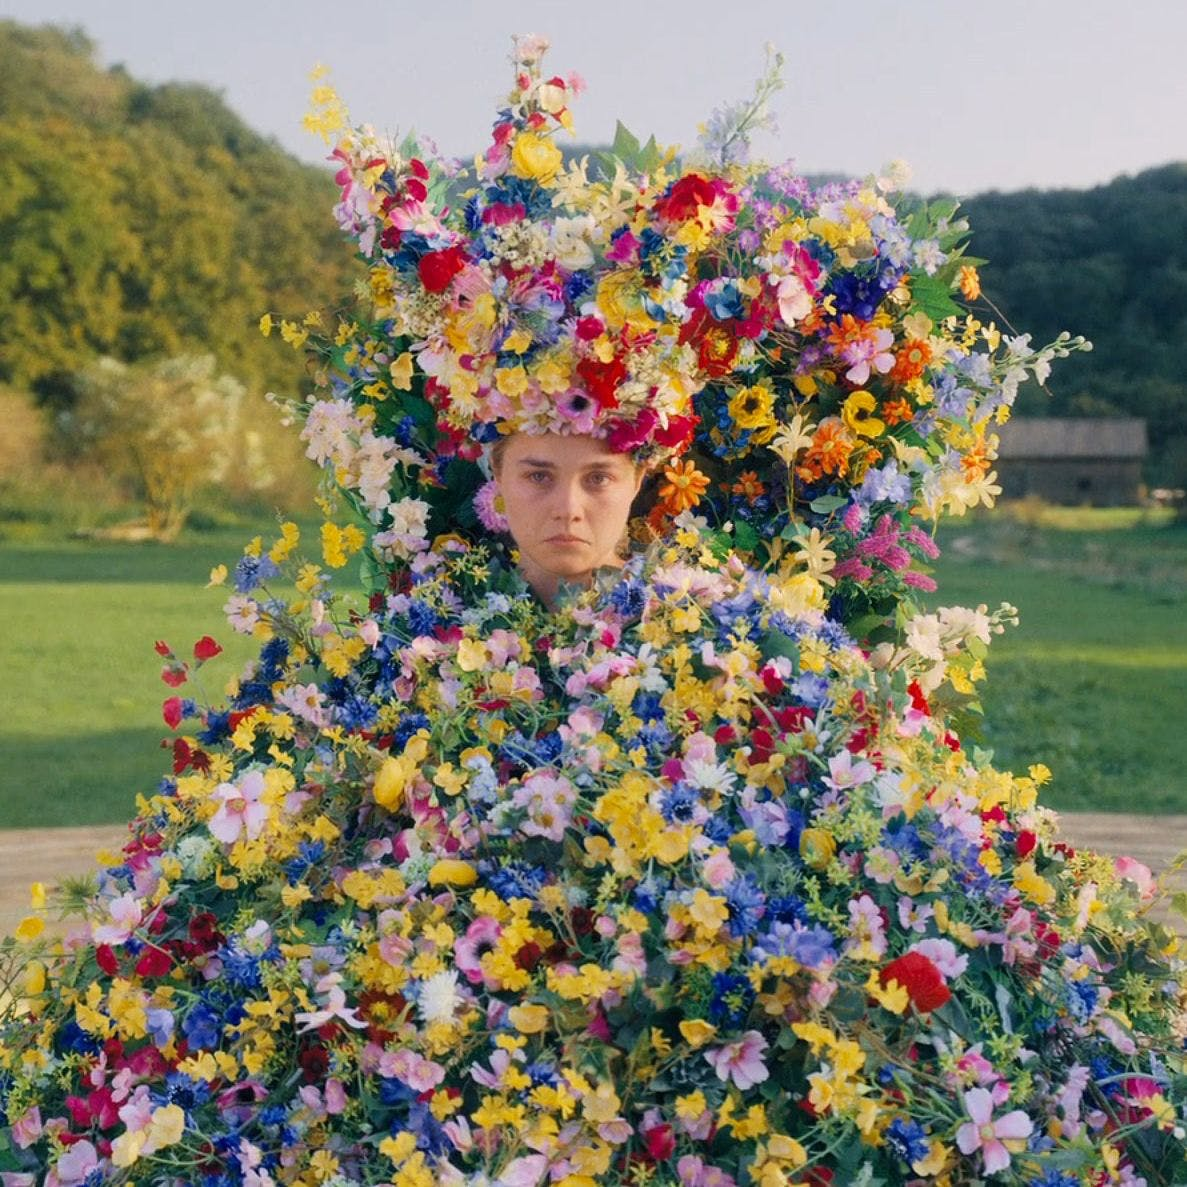 USD 65000 FOR THE 'MIDSOMMAR' DRESS